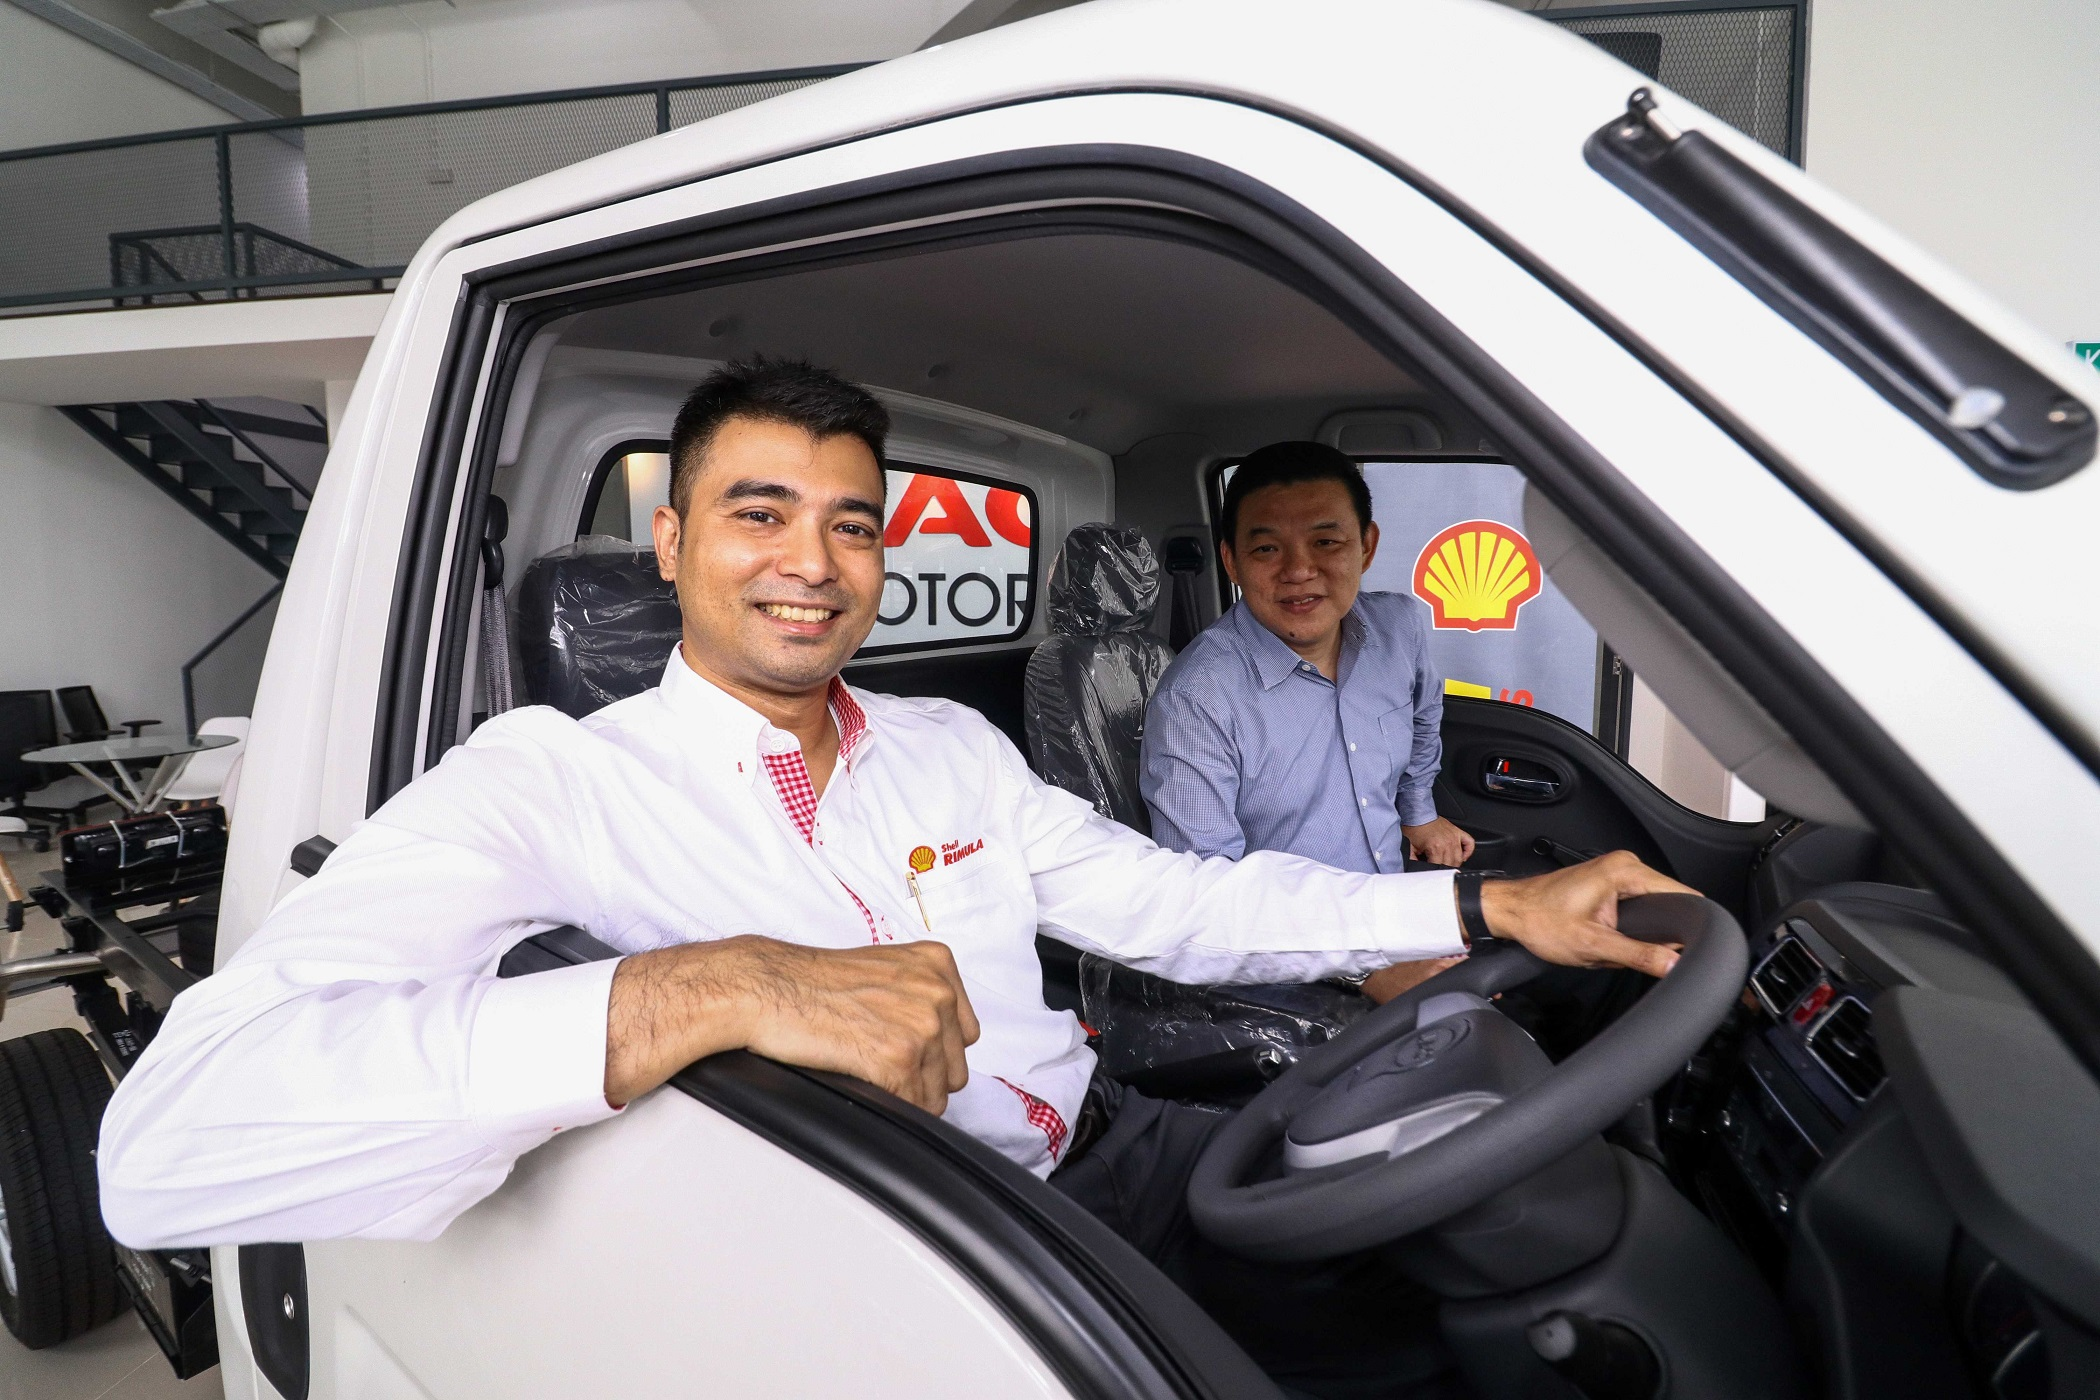 Shell Rimula Brand Mngr Ravi Shankar (L) & Mpire Auto Group CEO  Lau Yit Mun posing inside the JAC X30 light truck